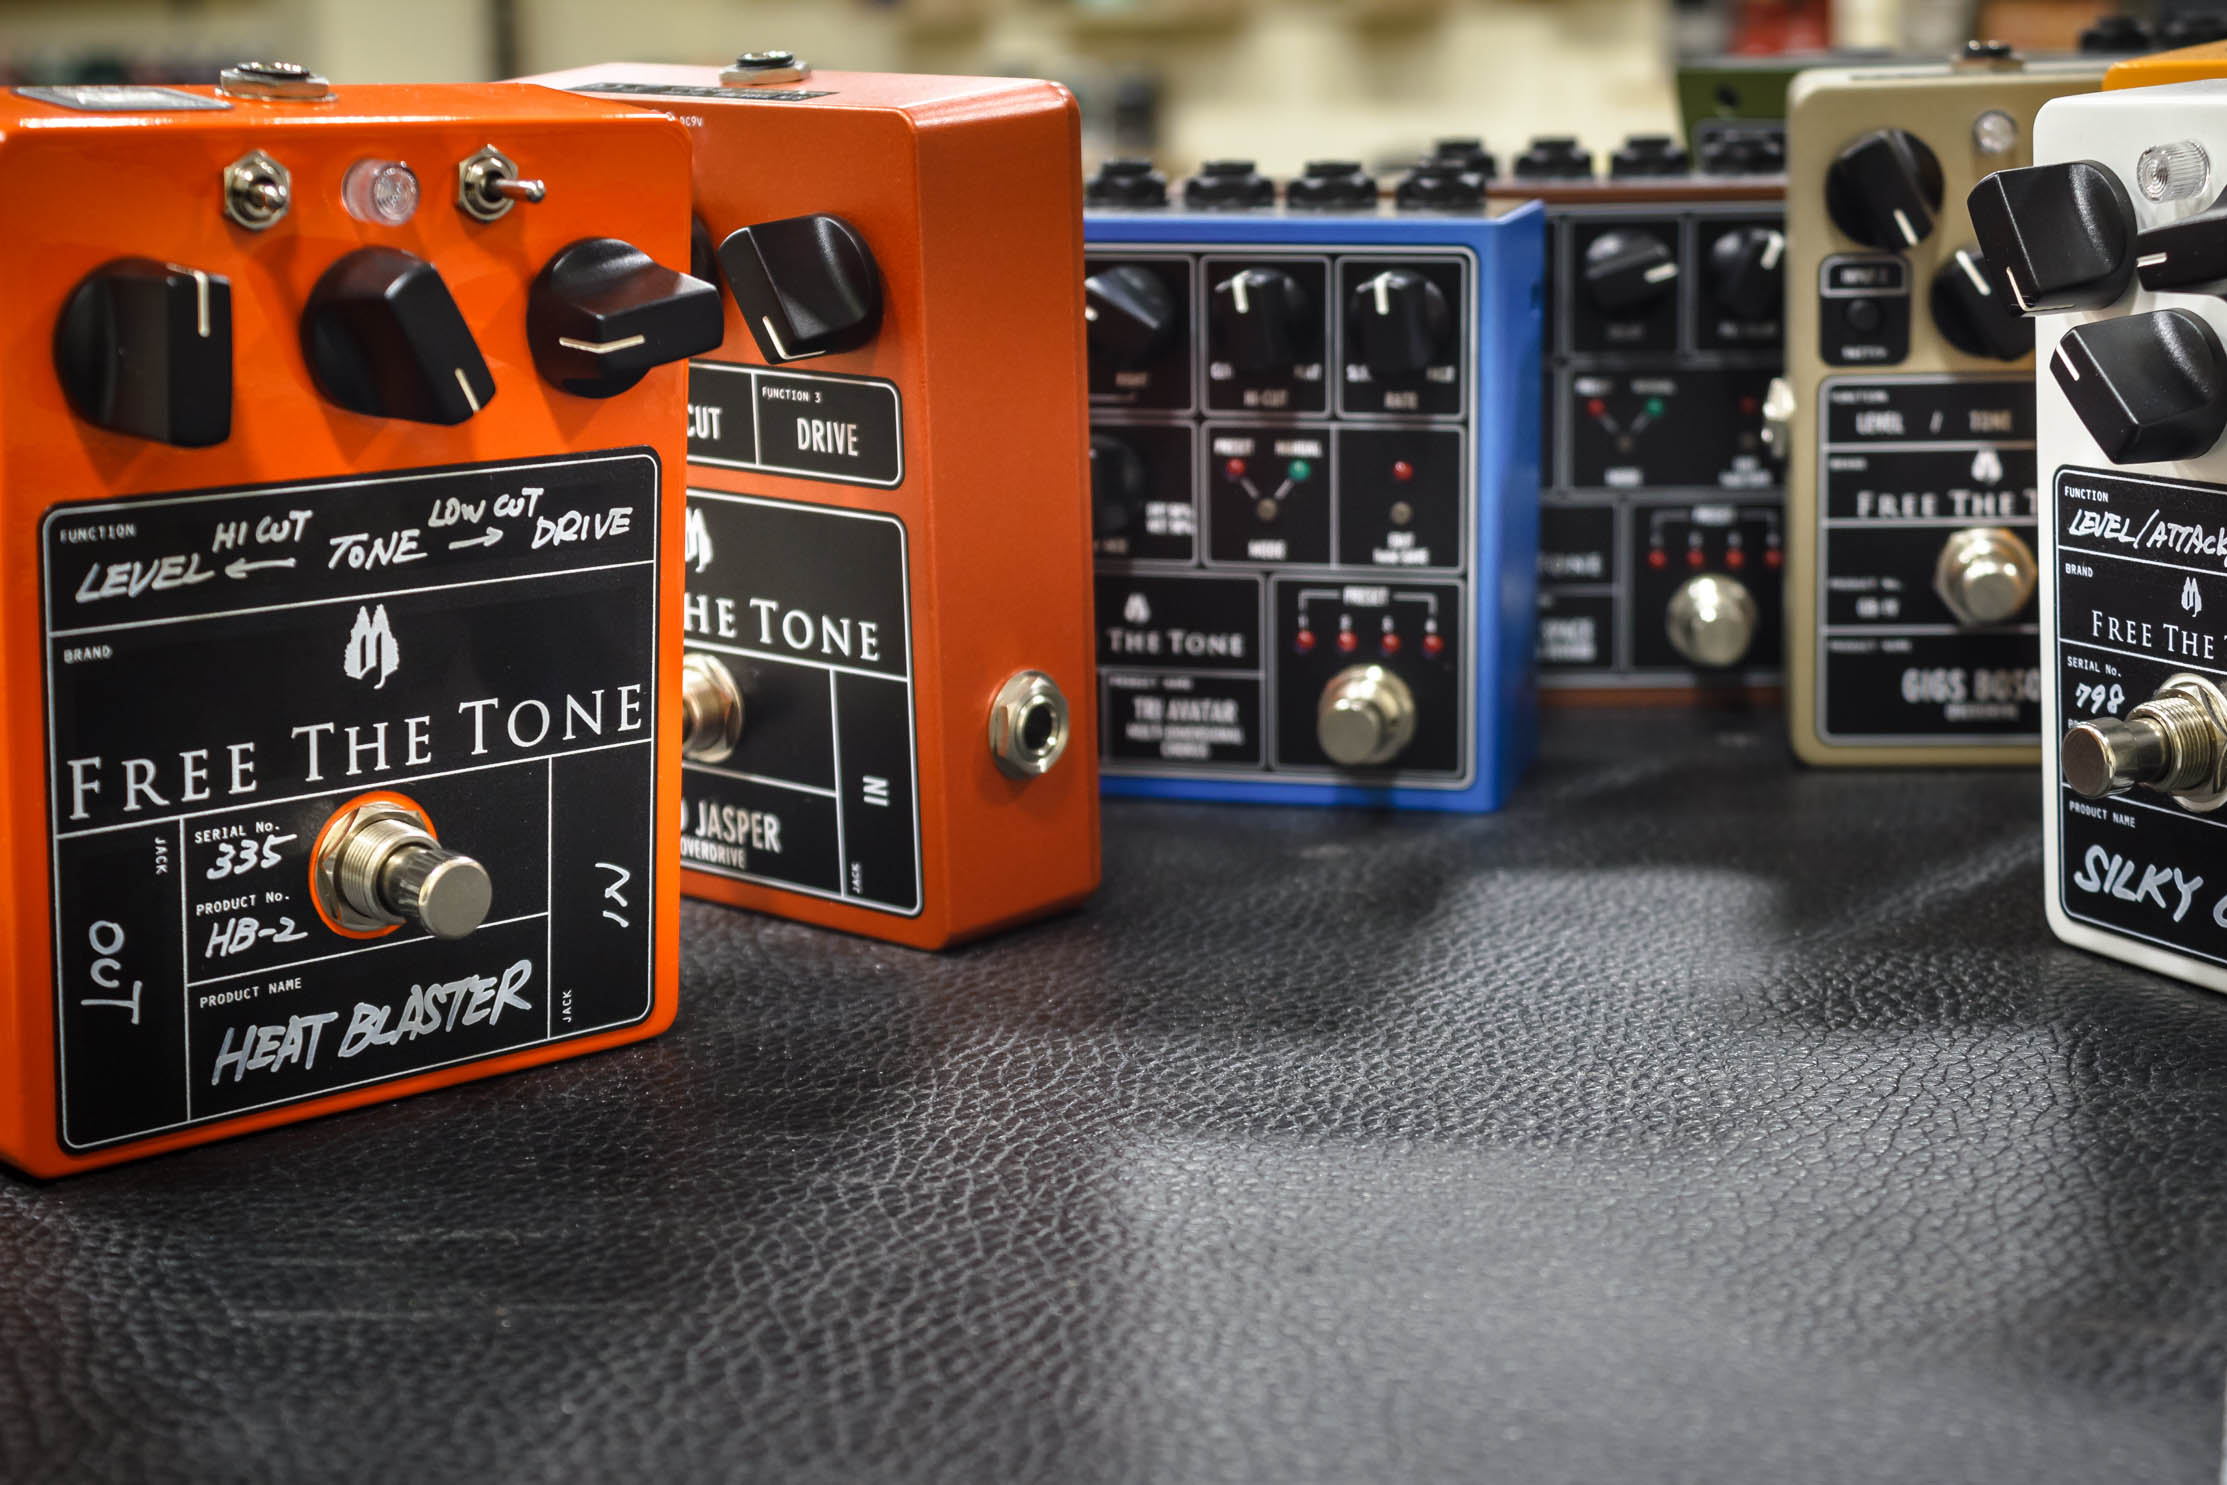 HTS (Holistic Tonal Solution) free the tone